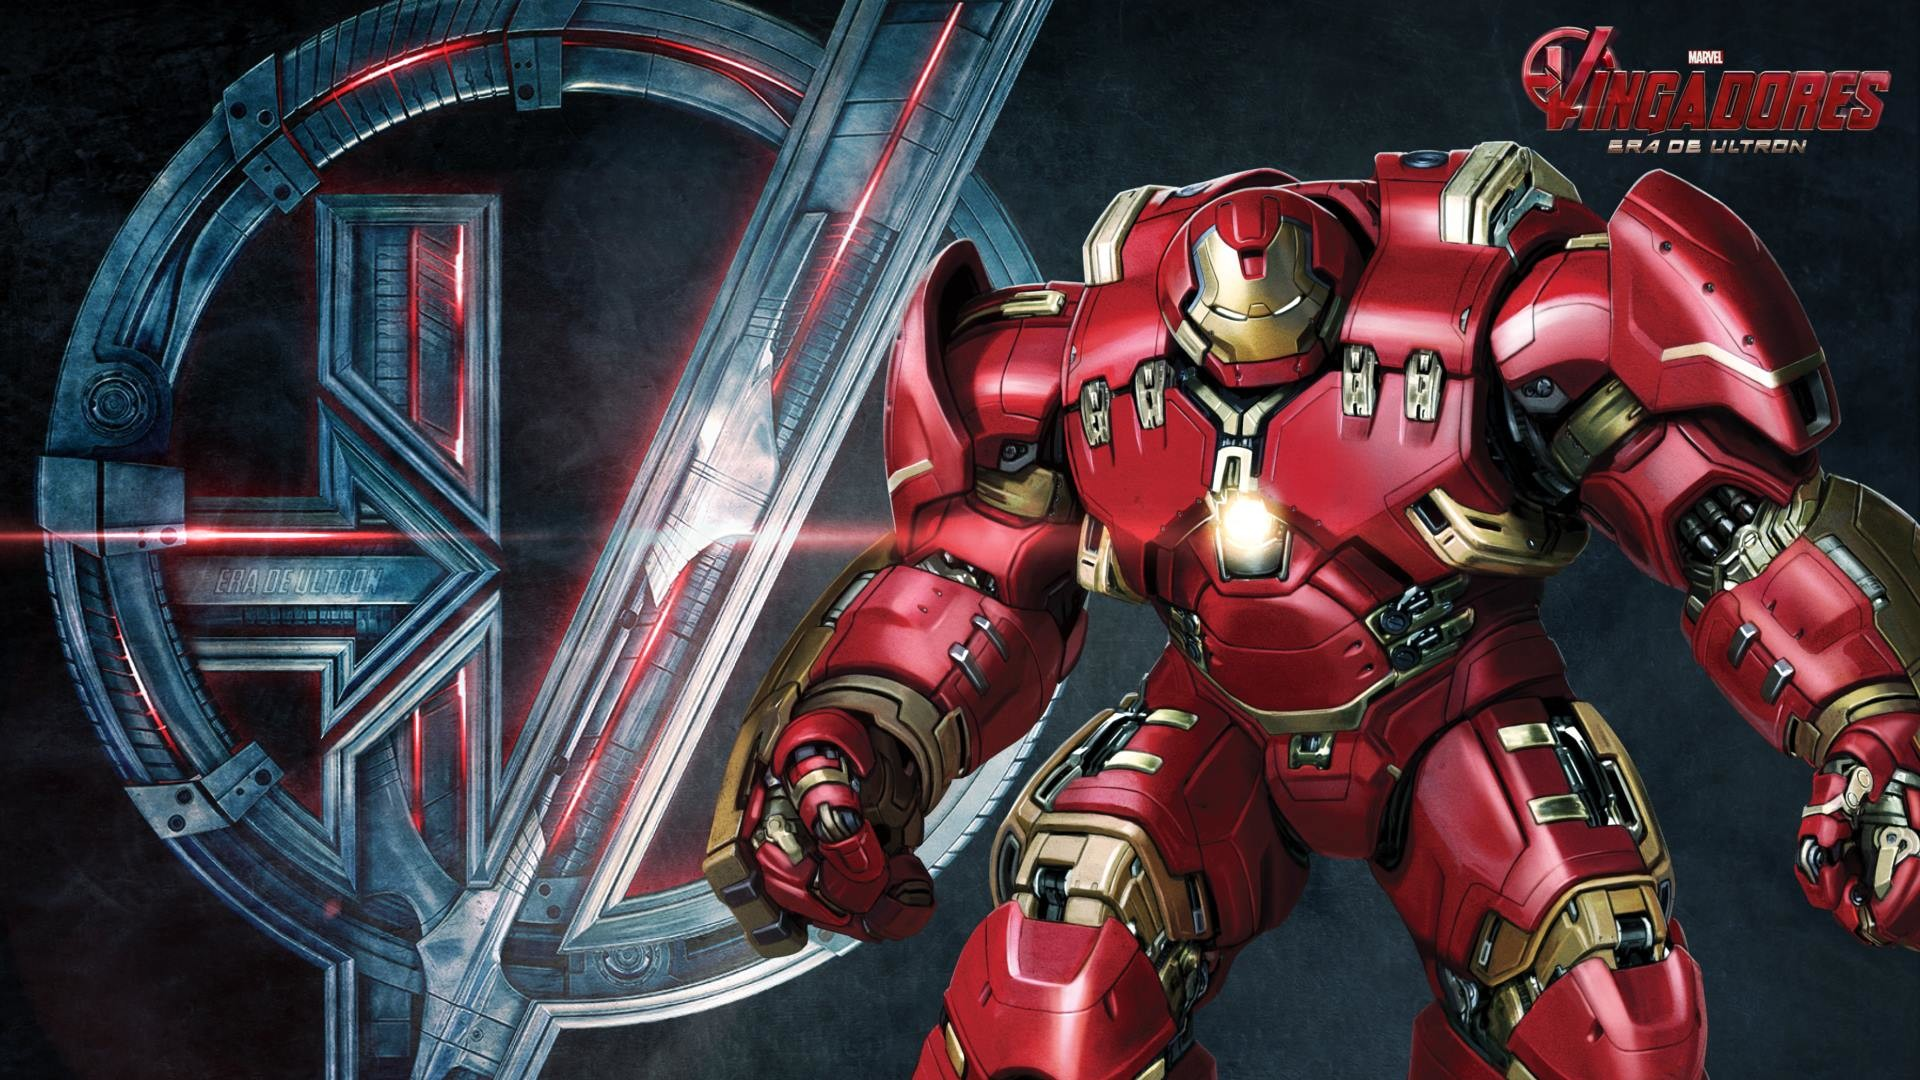 HD Hulkbuster Wallpaper 74 images 1920x1080